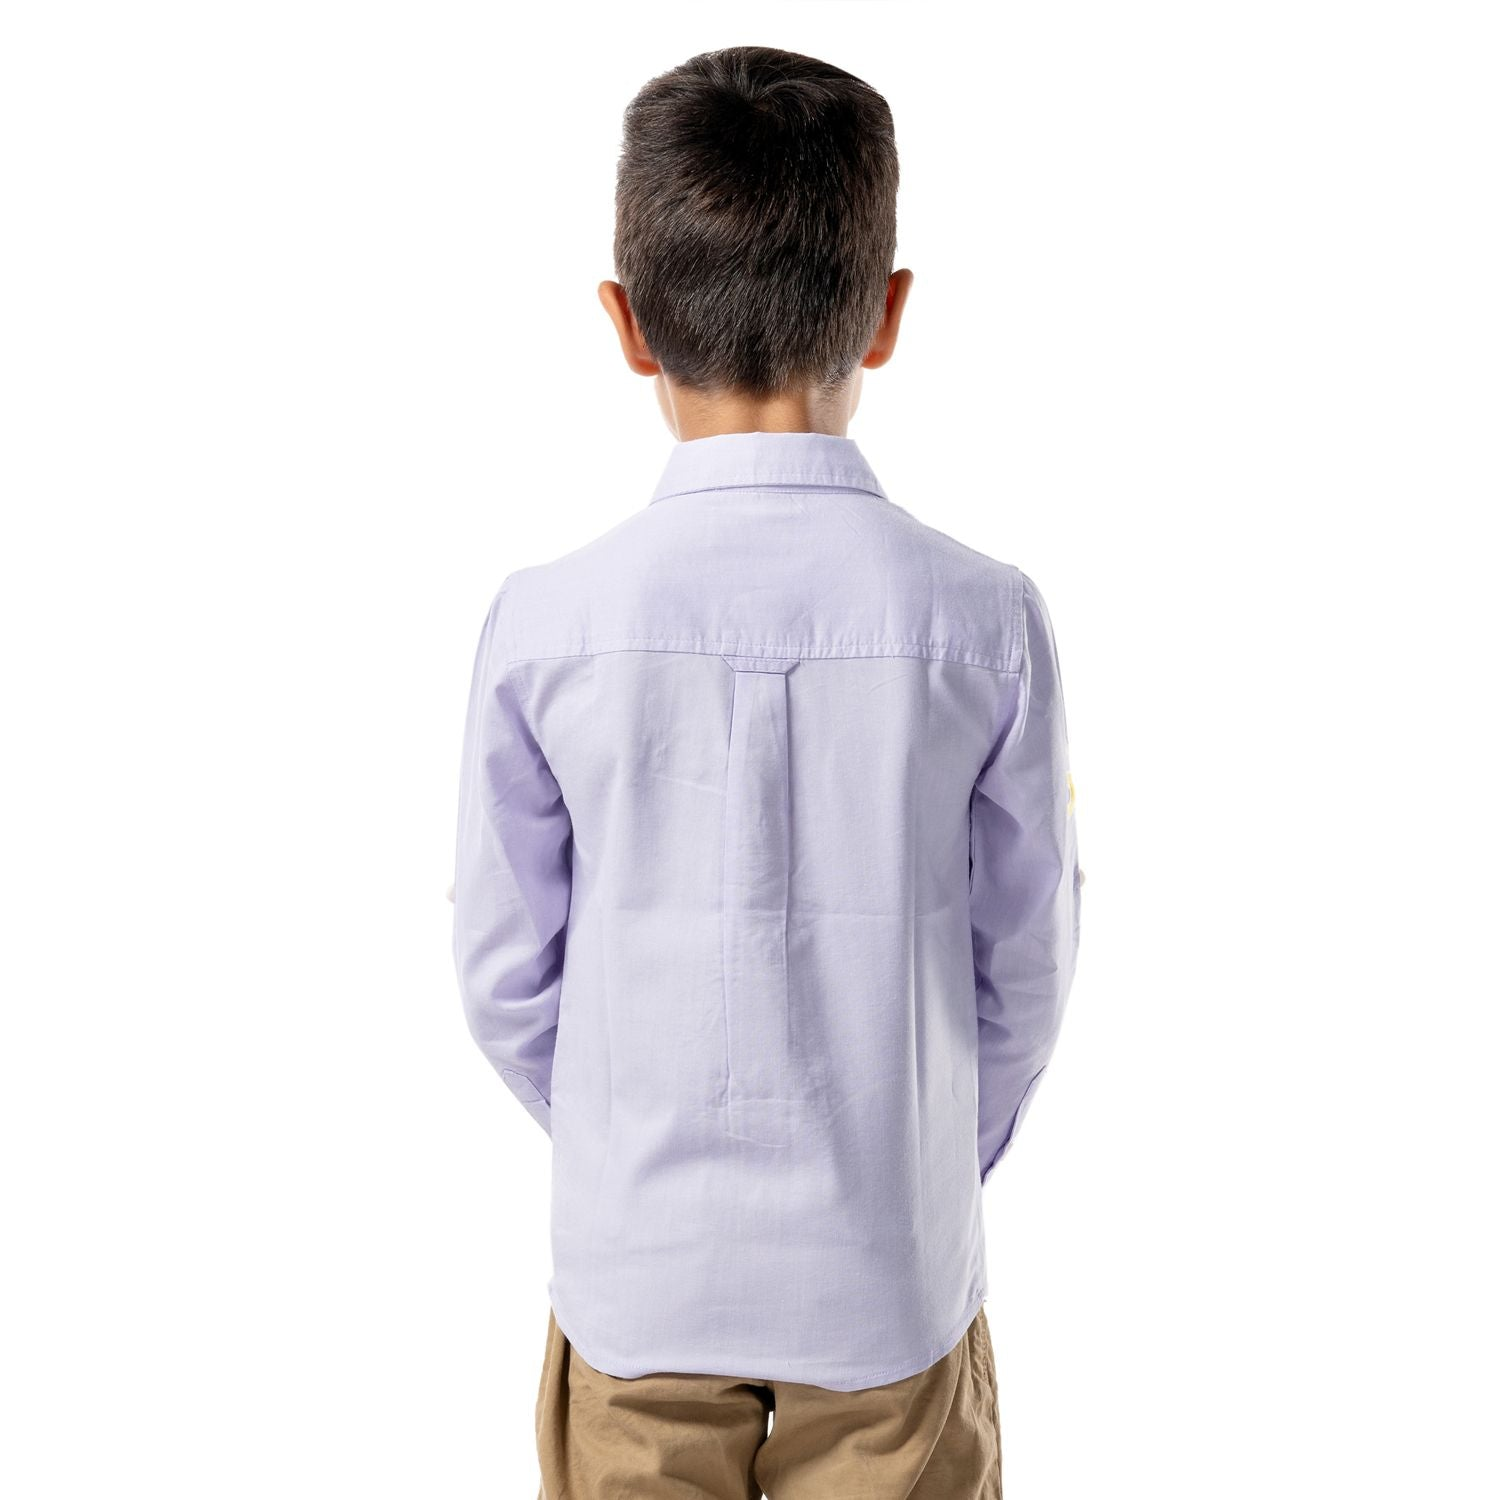 Austin Shirt for Boys